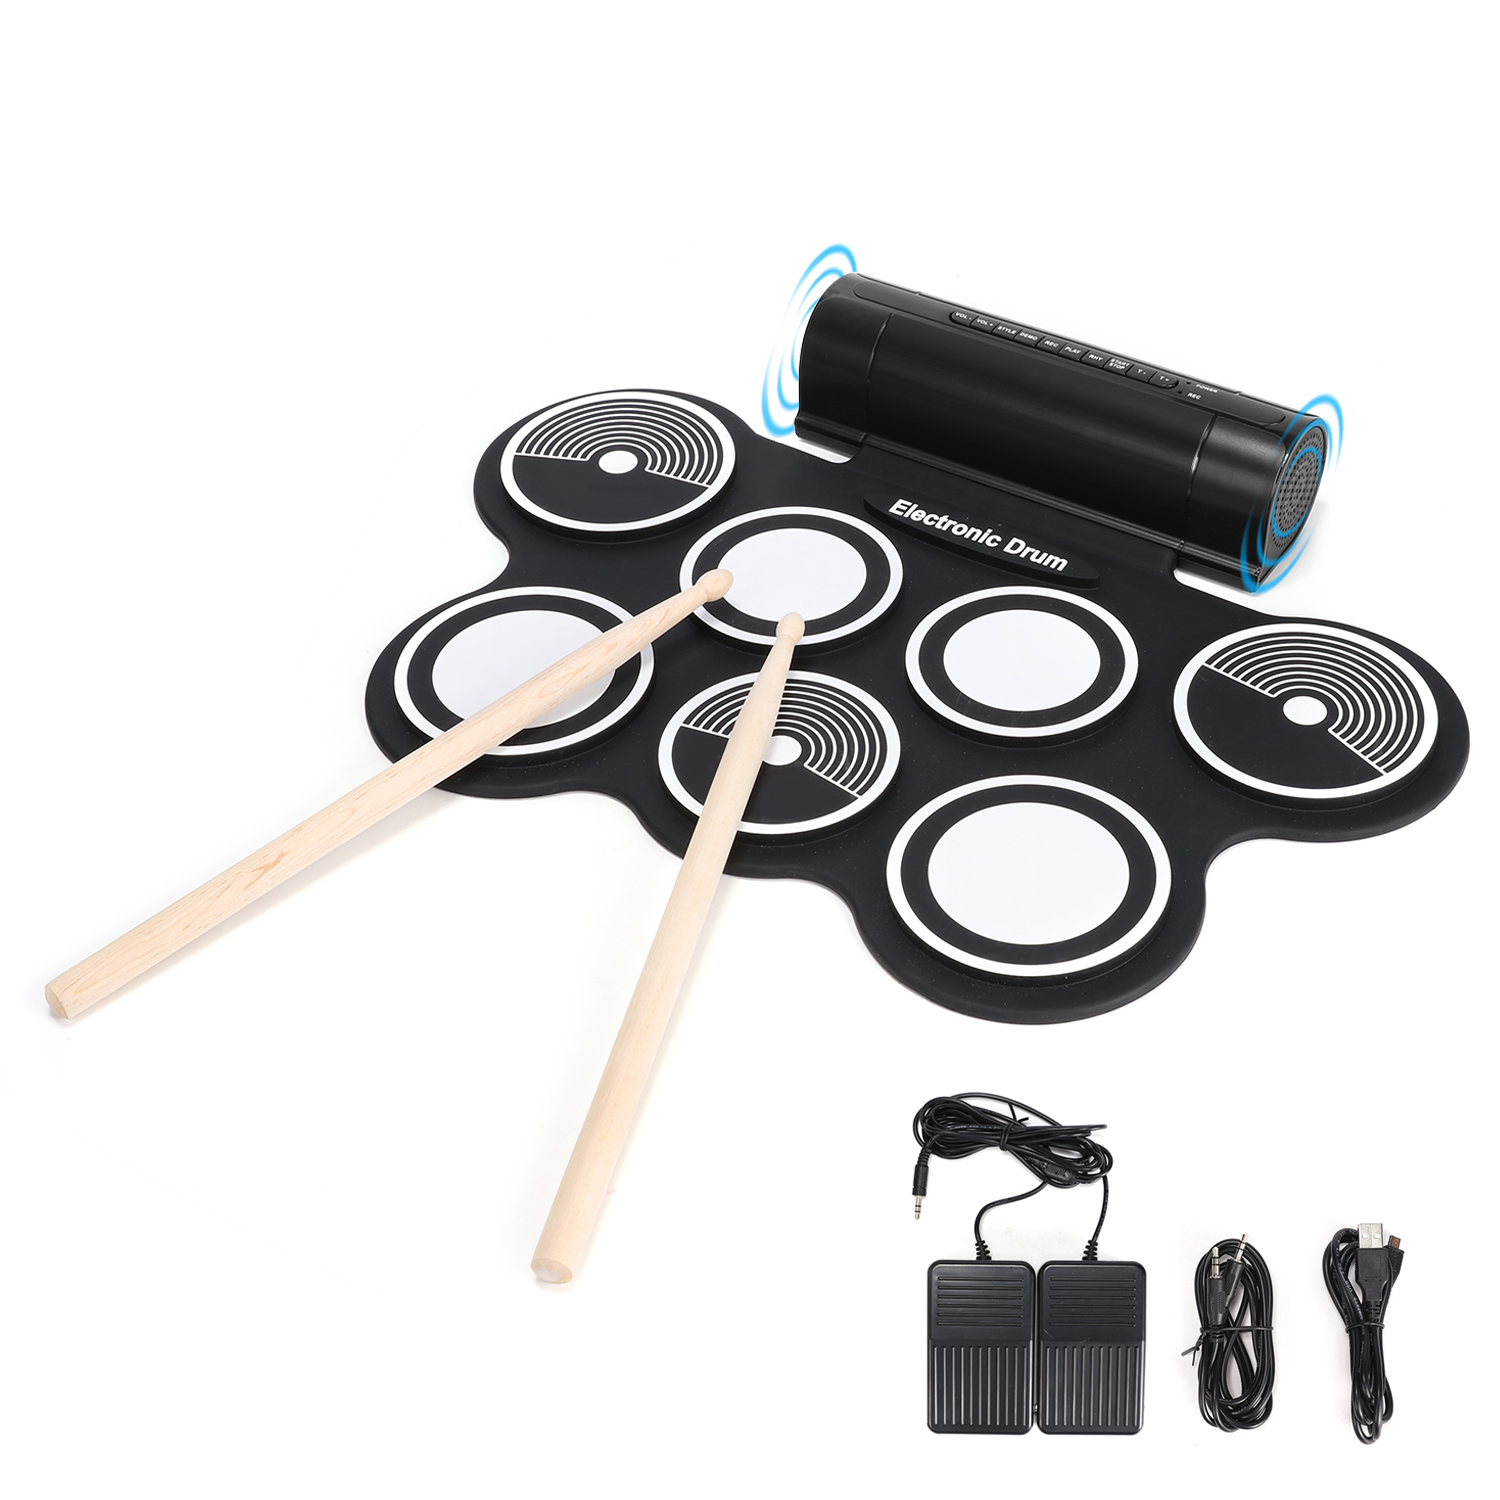 Donner Roll Up Drum Electronic Drum for Kids Starters, Built in Speaker by Donner